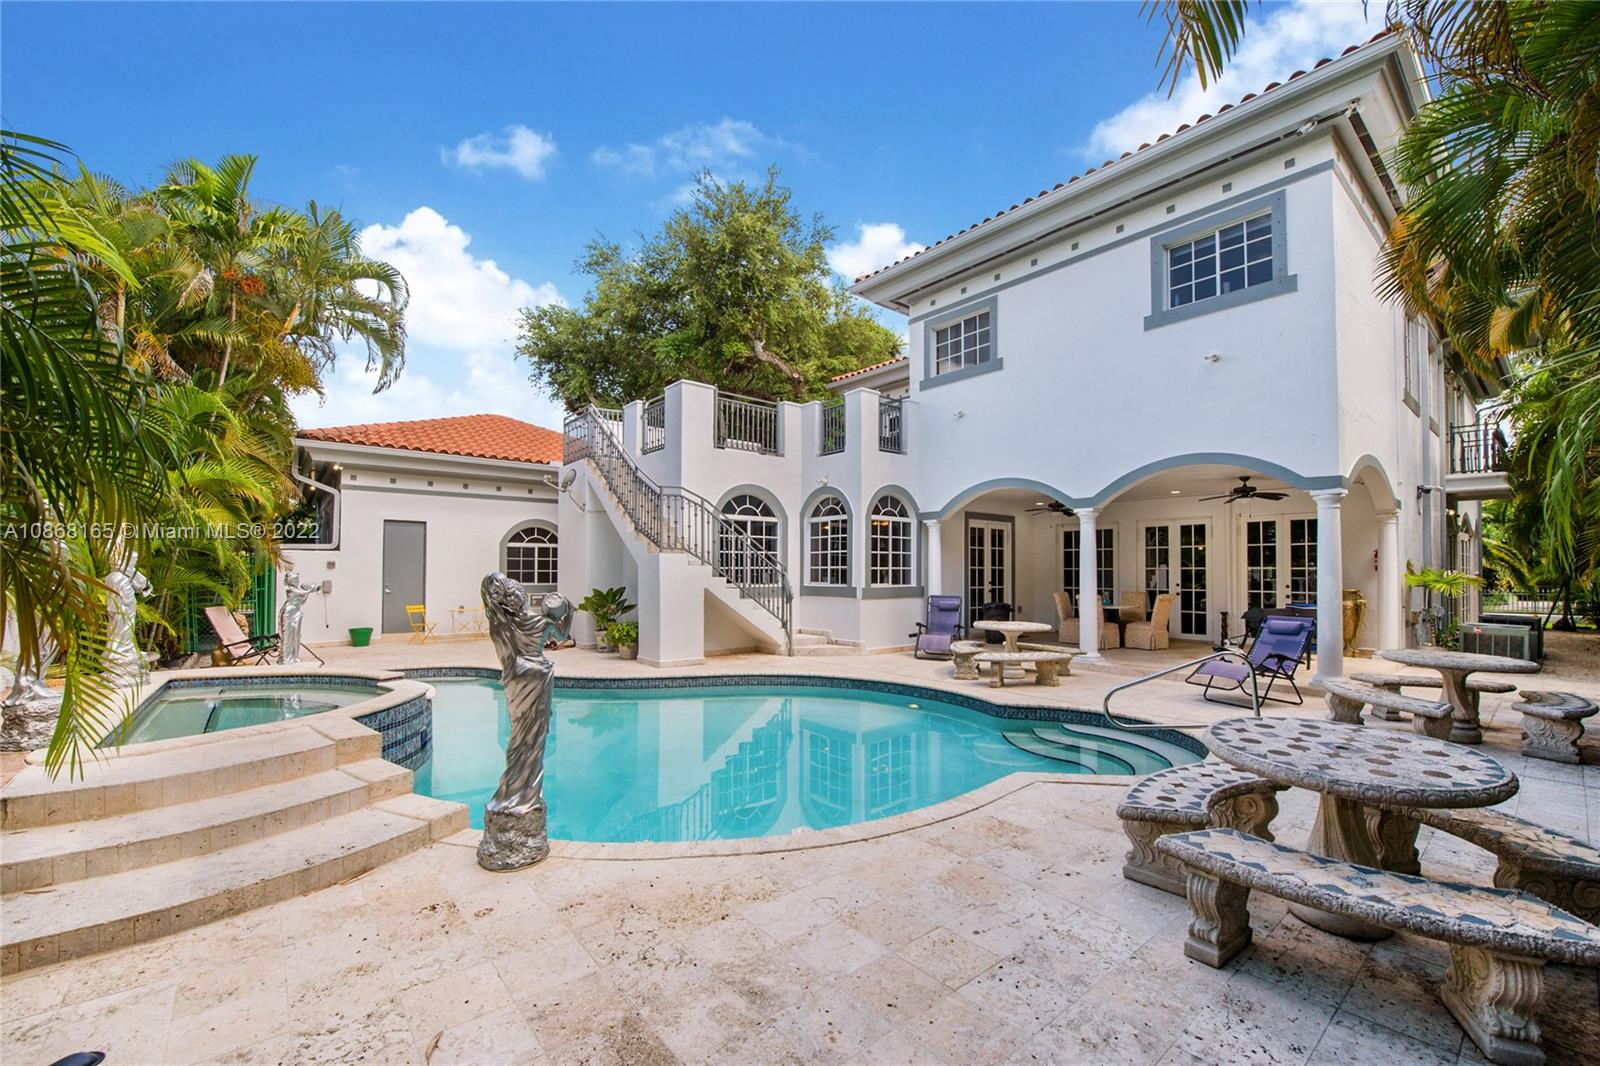 LEASED TILL 9-30-21 -ELEGANT EXECUTIVE HOME - OVER 5600 SQ FT UNDER AIR- CLOSE TO SCHOOLS AND SHOPPING-MARBLE - MARBLE - MARBLE- FLOORS- SPIRAL STAIRS- KITCHEN-LIVING ROOM-FAMILY ROOM -FLORIDA ROOM-ALL MARBLE- 5 BEDROOM-4 1/2 BATH-PLUS SEPARATE LIVE-IN -1/1 OR CABANA - HAS COVERED REAR ENTERTAINING PATIO-FAMILY ROOM WITH FULL WET BAR-POSS-EXERCISE ROOM-GYM UNDER AIR-FREE FORM HEATED POOL WITH SPA - MASTER SUITE WITH TWO BUILT OUT- WALK INS- 14 FOOT CEILINGS- WHOLE HOUSE 30 DAY DIESEL GENERATOR - WORKING FIREPLACE-OWNER WILLING TO HOLD MORTGAGE WITH 1/3 DOWN.  CLOSE TO UM AND THE BILTMORE HOTEL AND GOLF RESORT AND THE TENNIS CENTER- SALVATORE PARK - 5% RETURN -GROSS- AS INVESTMENT   SHOWINGS TUESDAY AND WEDNESDAYS-BY APPOINTMENT ONLY---ALARM SYSTEM ON